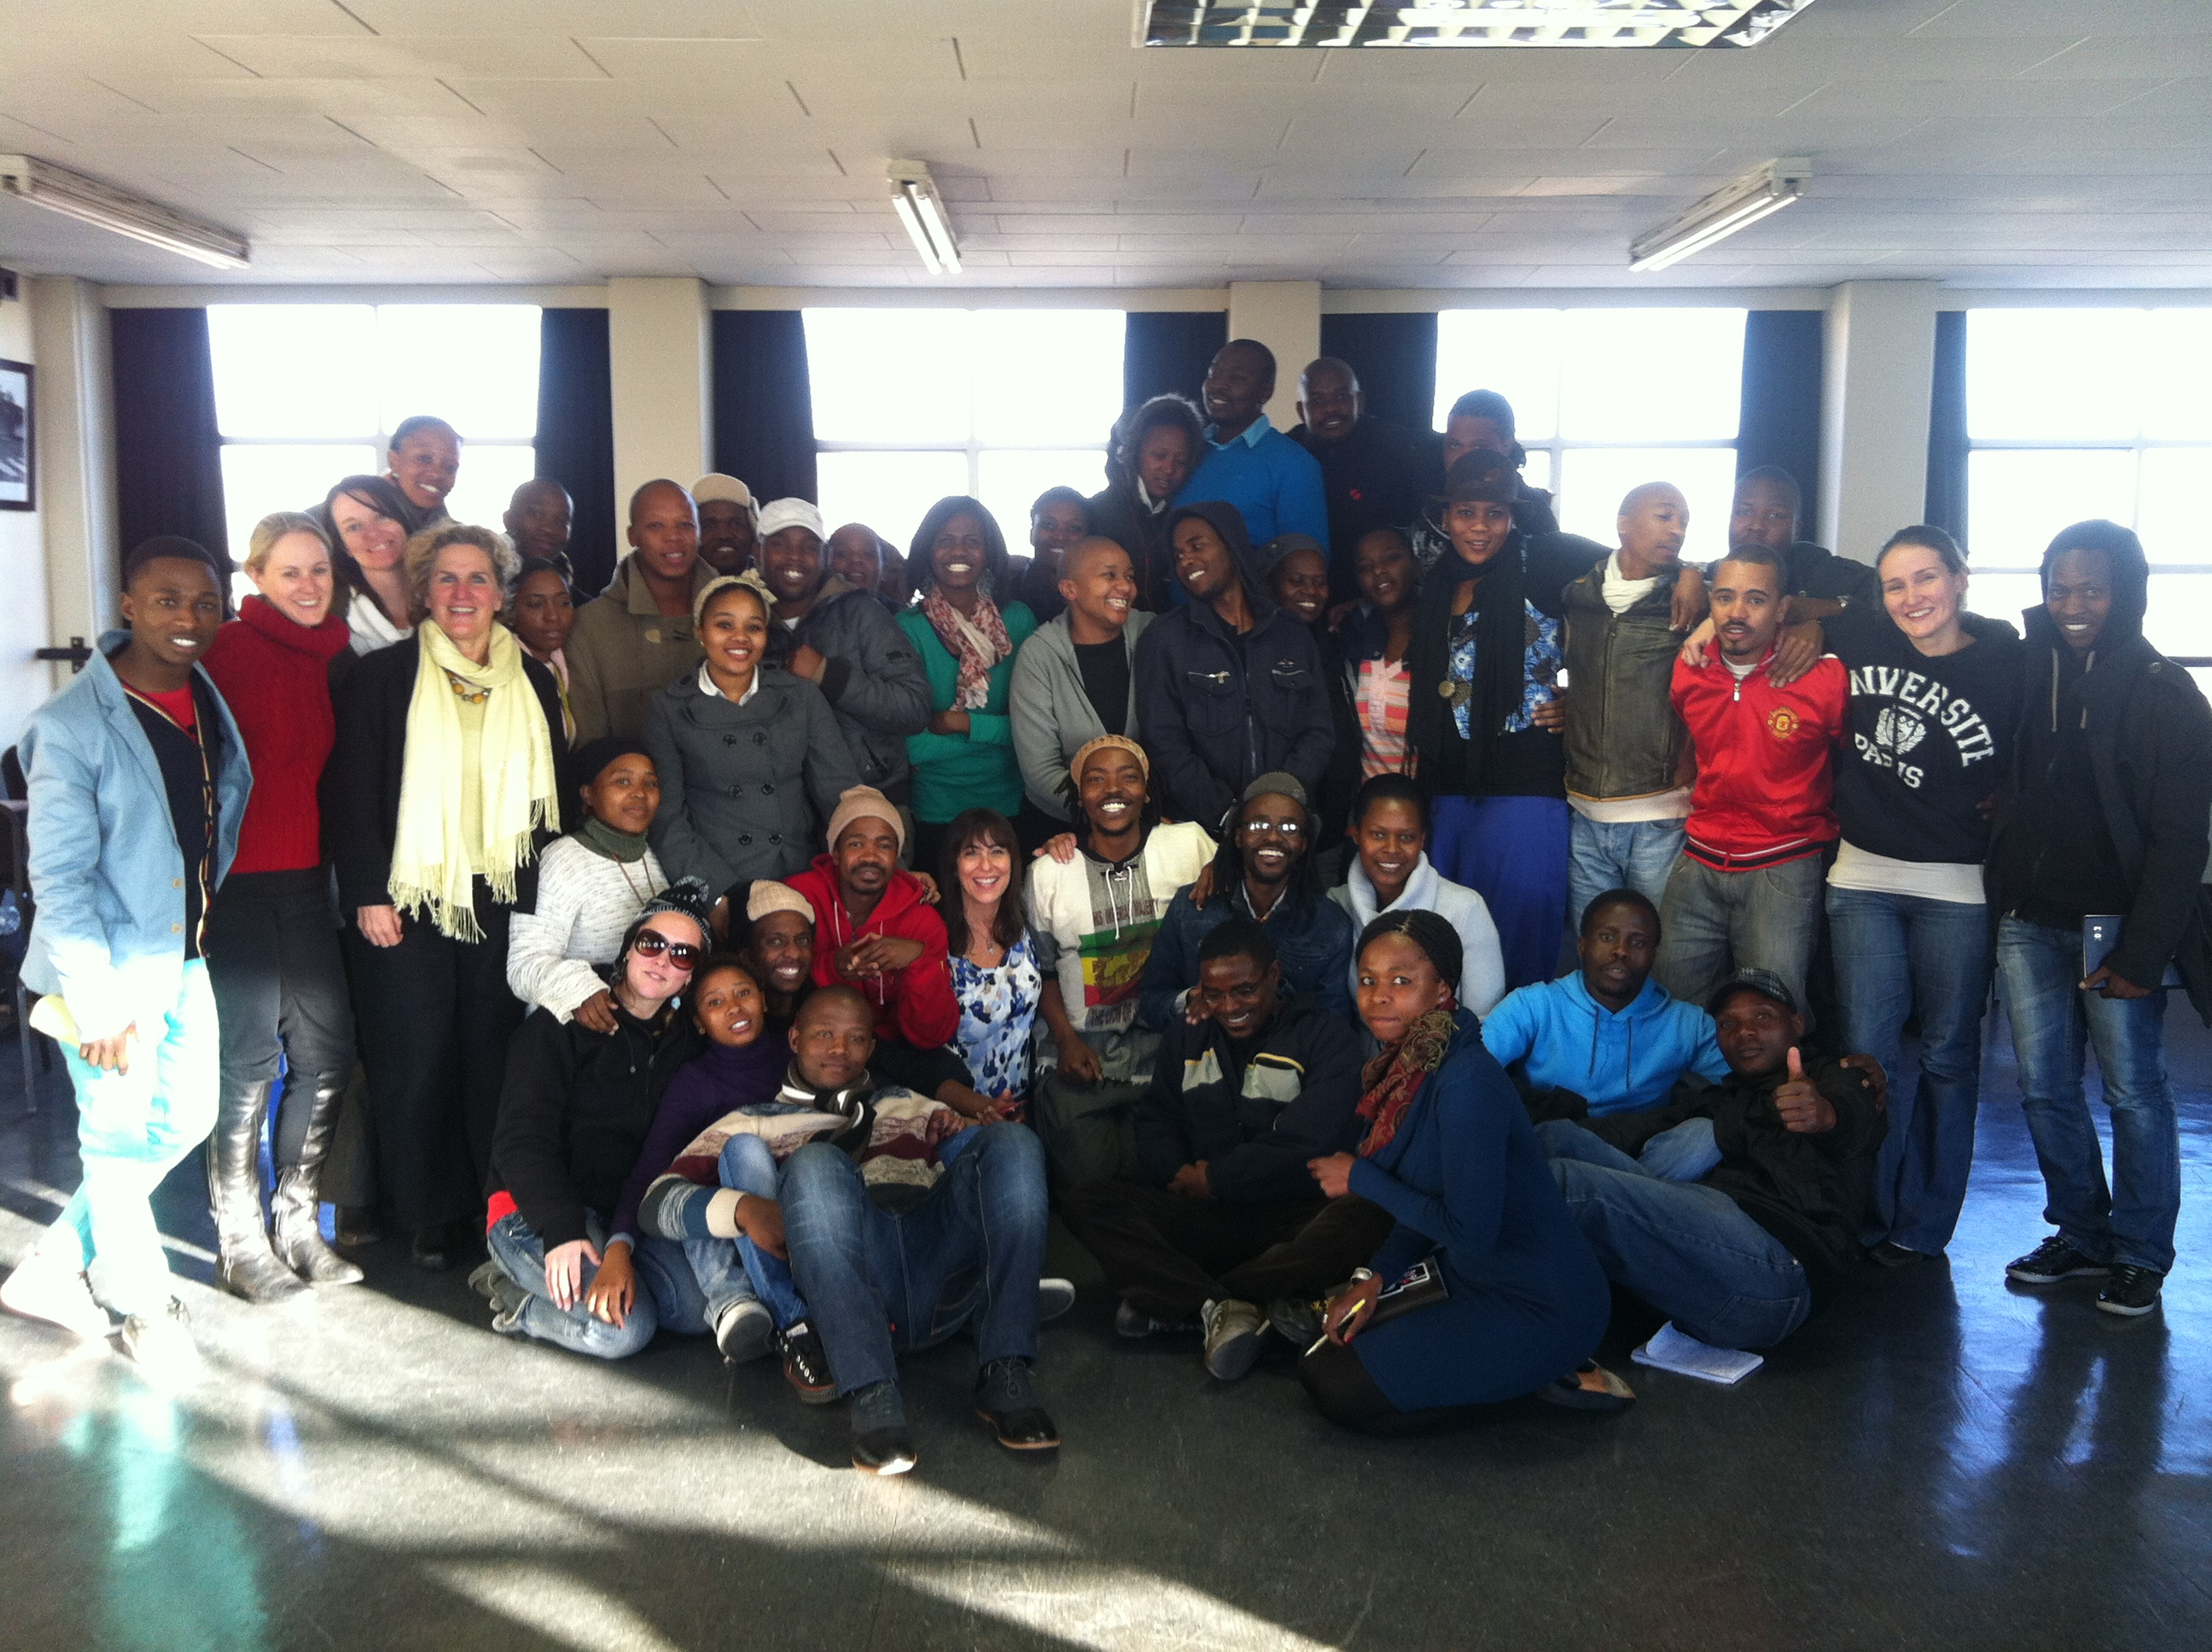 Cathy Salit Leads Performance Workshop In Johannesburg South Africa